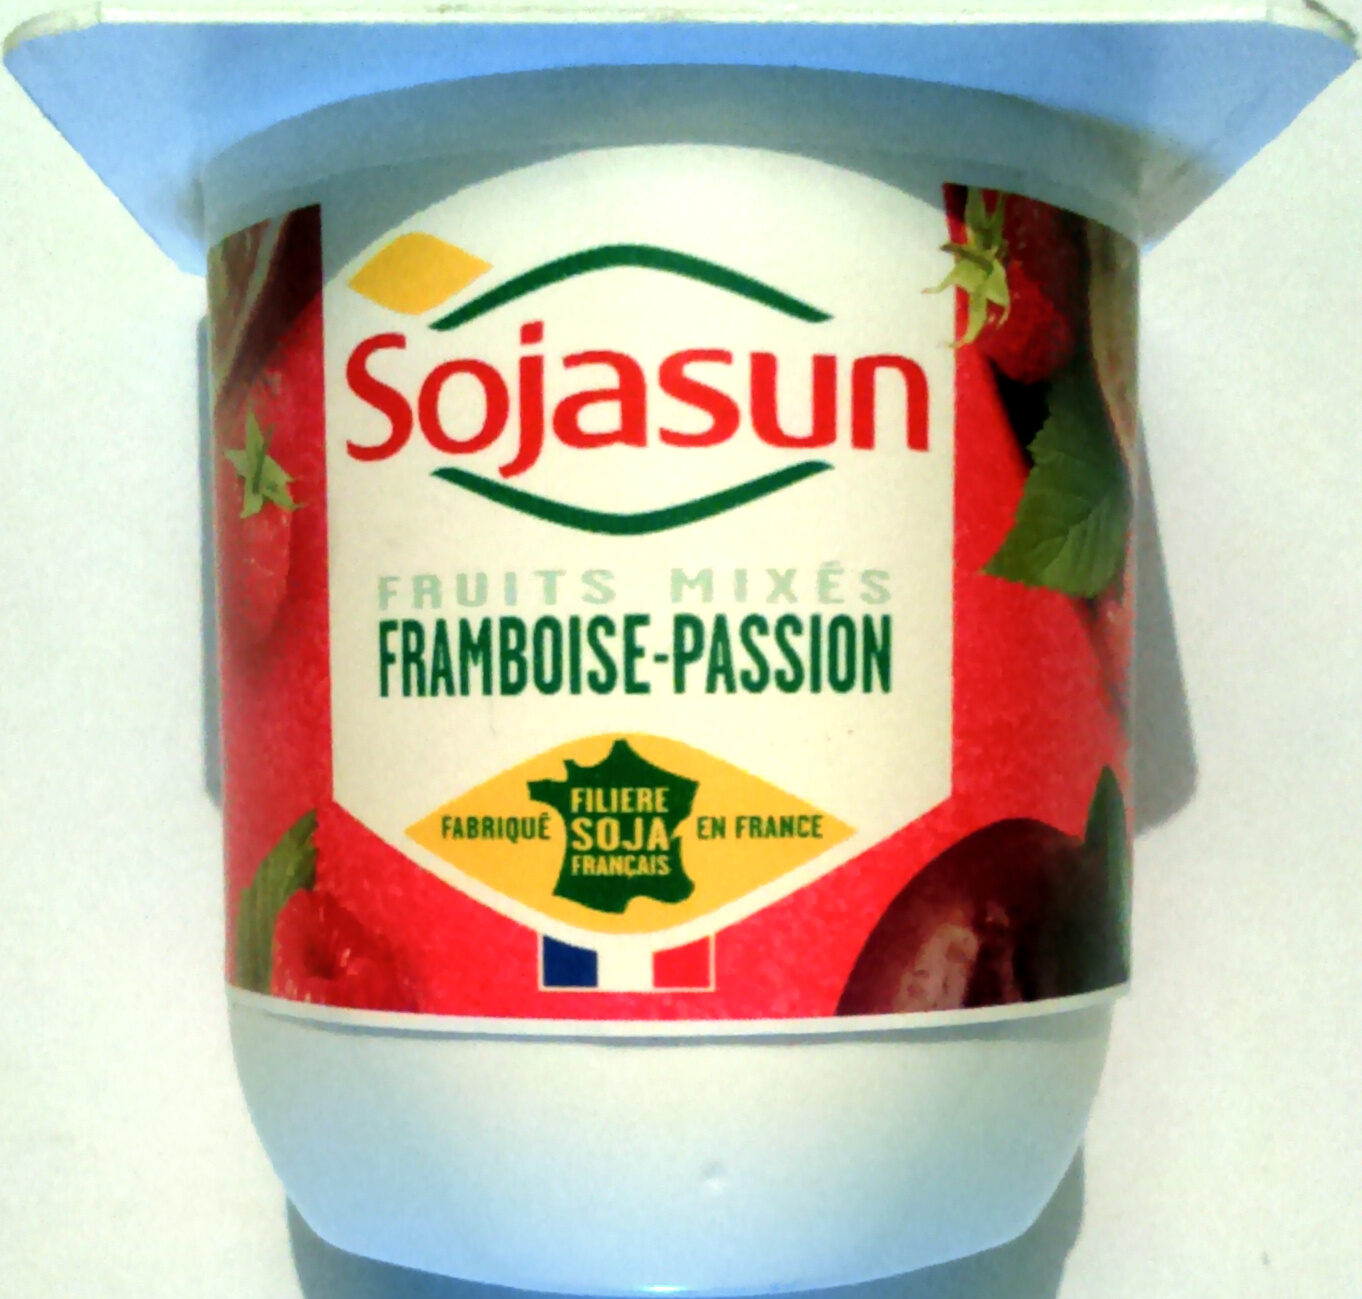 Fruits mixés (Framboise Passion) - Product - fr